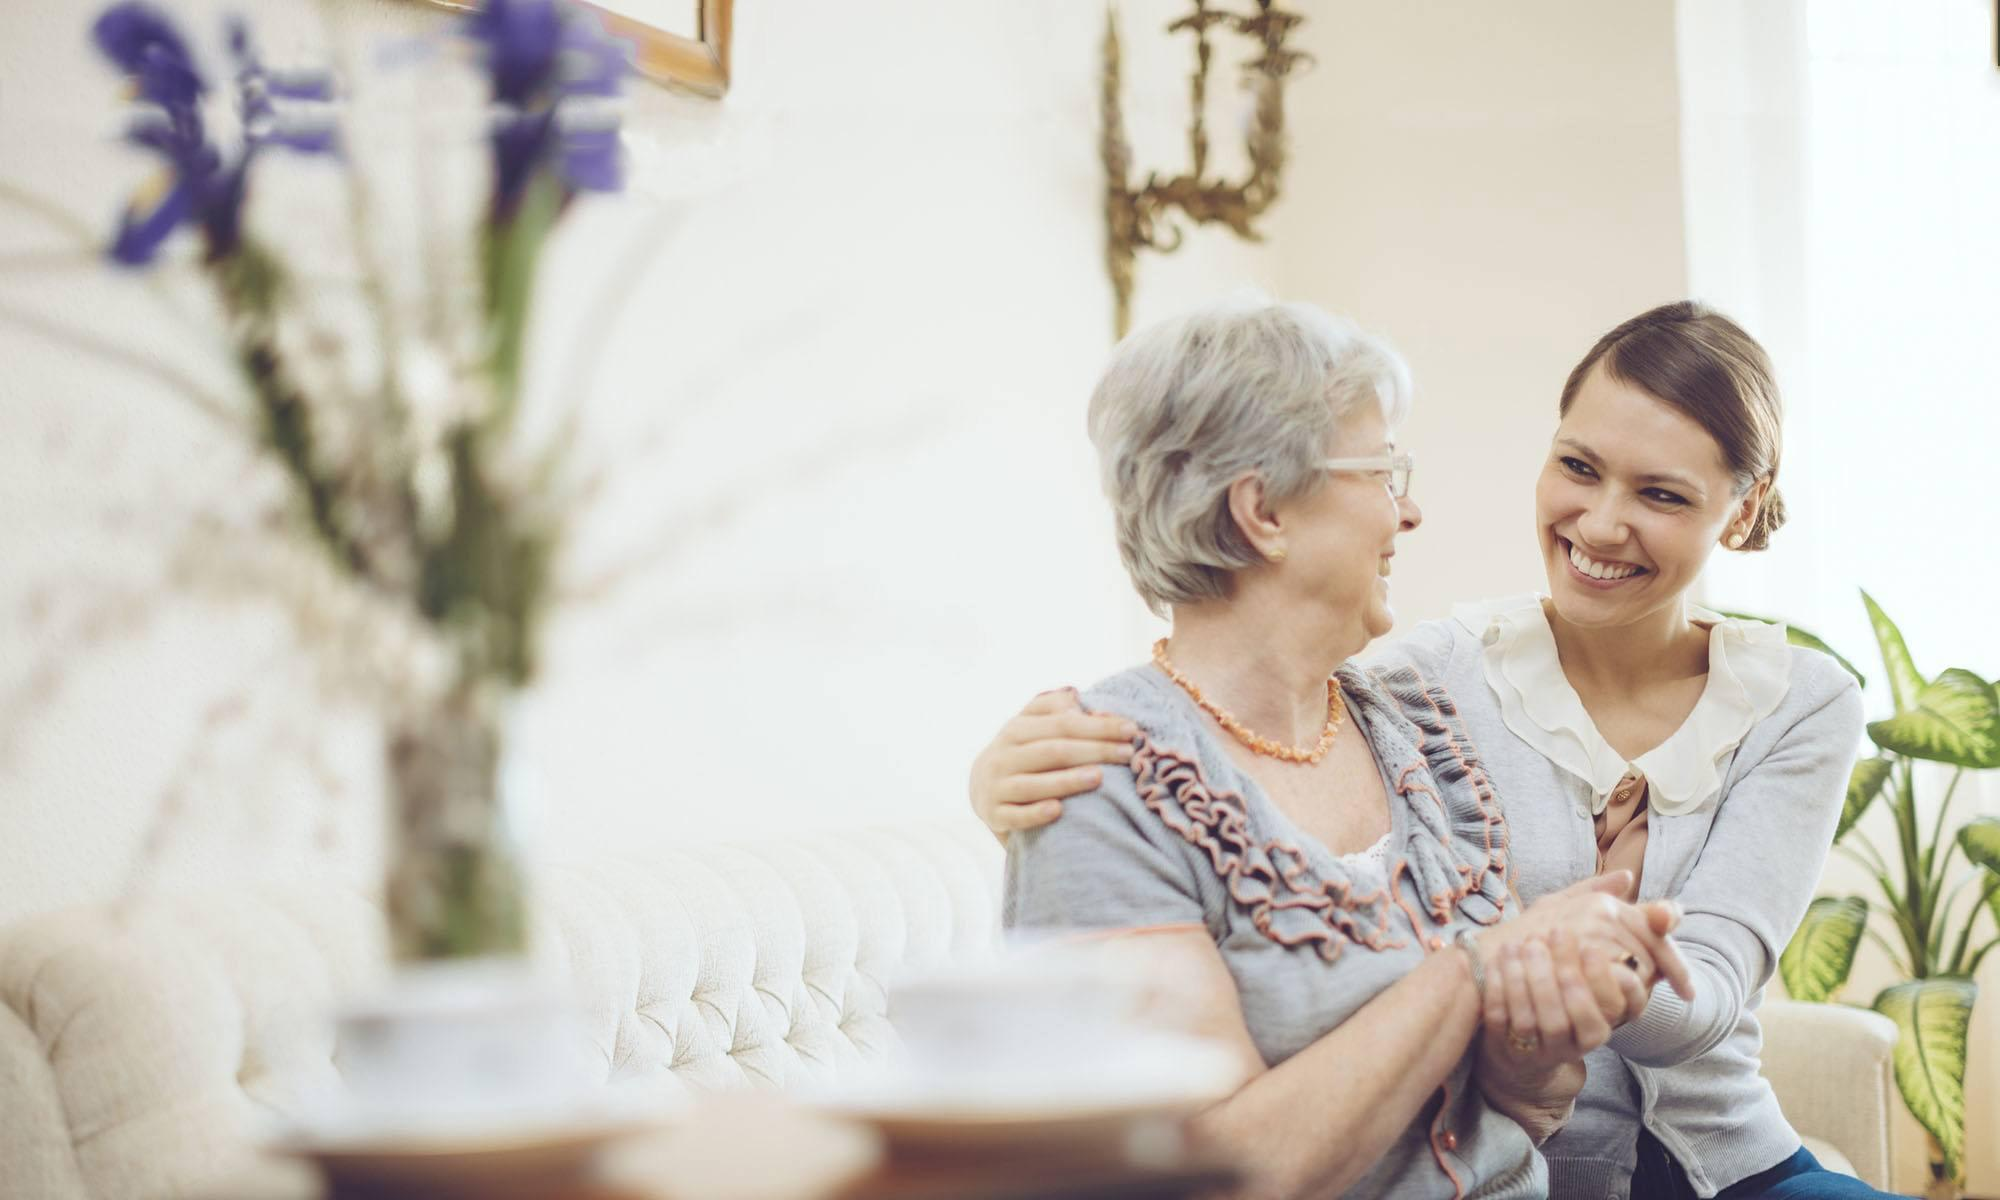 Learn more about our senior services at Maplewood at Home in Danbury, CT.